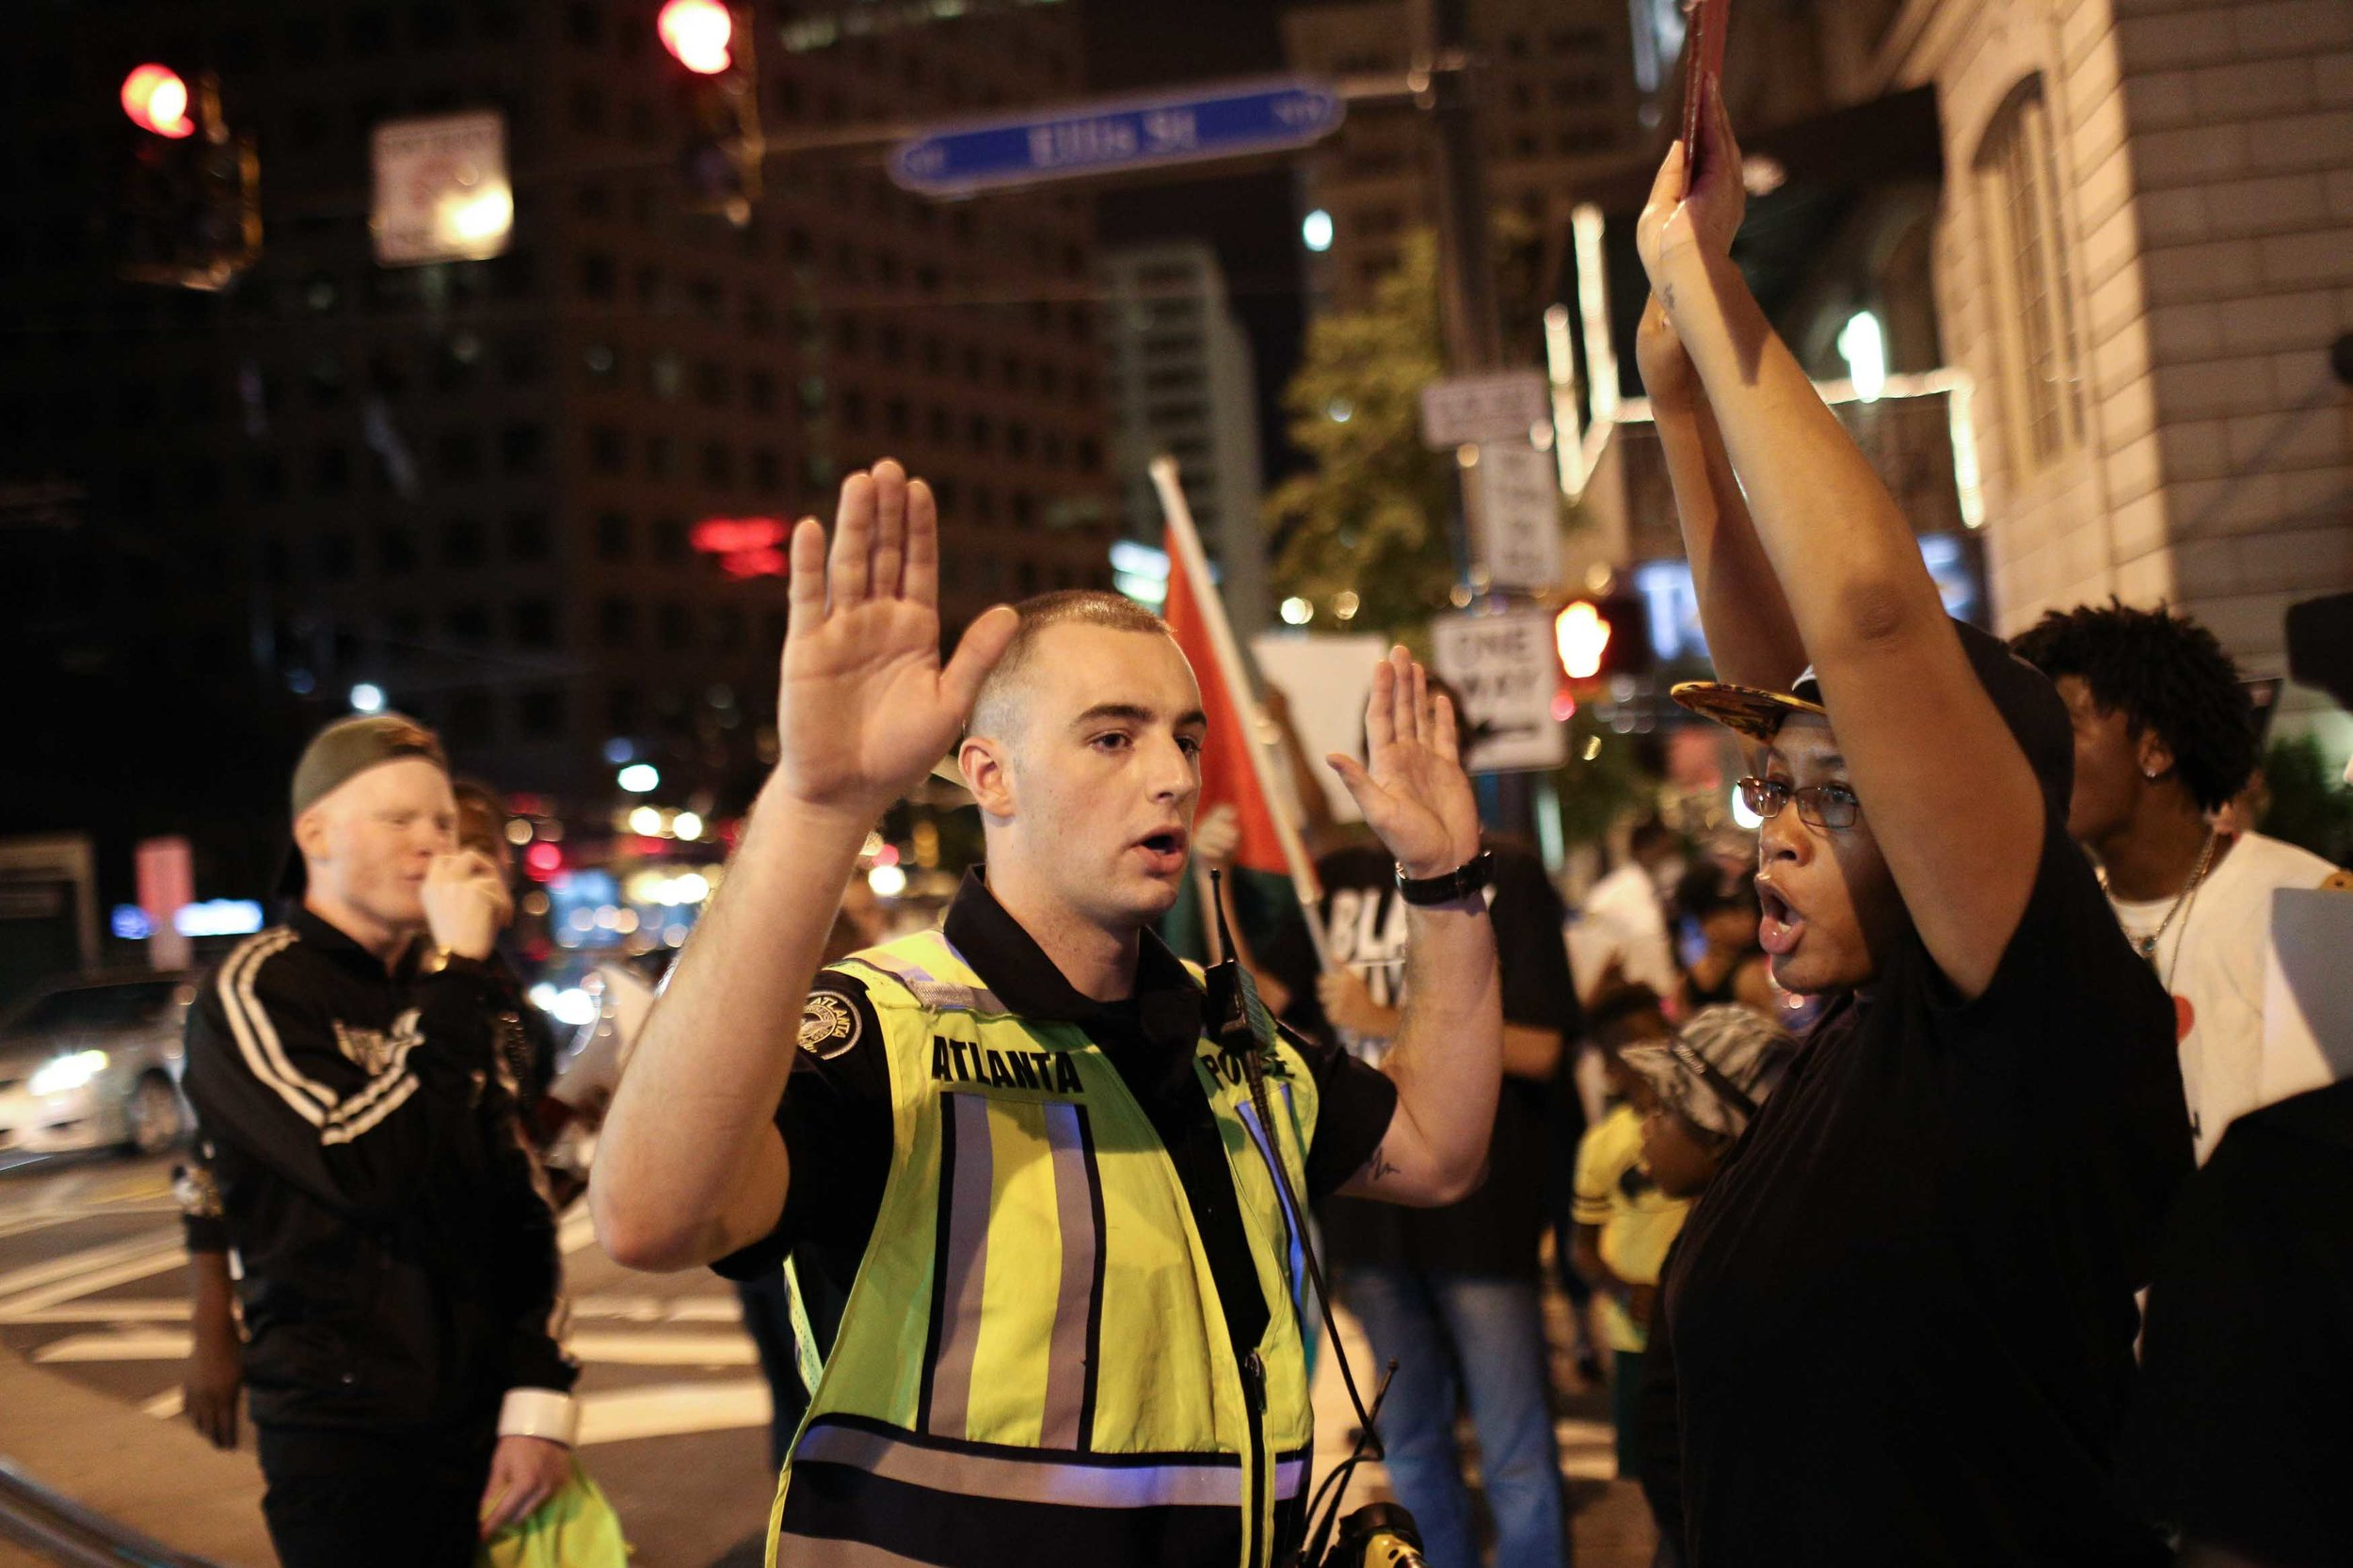 An Atlanta police officer tells Black Lives Matter protesters to move out of the street during a protest in downtown Atlanta, Saturday, Sept. 24, 2016. The protesters gathered in response to the police shooting deaths of Terence Crutcher in Tulsa, Okla. and Keith Lamont Scott in Charlotte, N.C.  (AP Photo/Branden Camp)